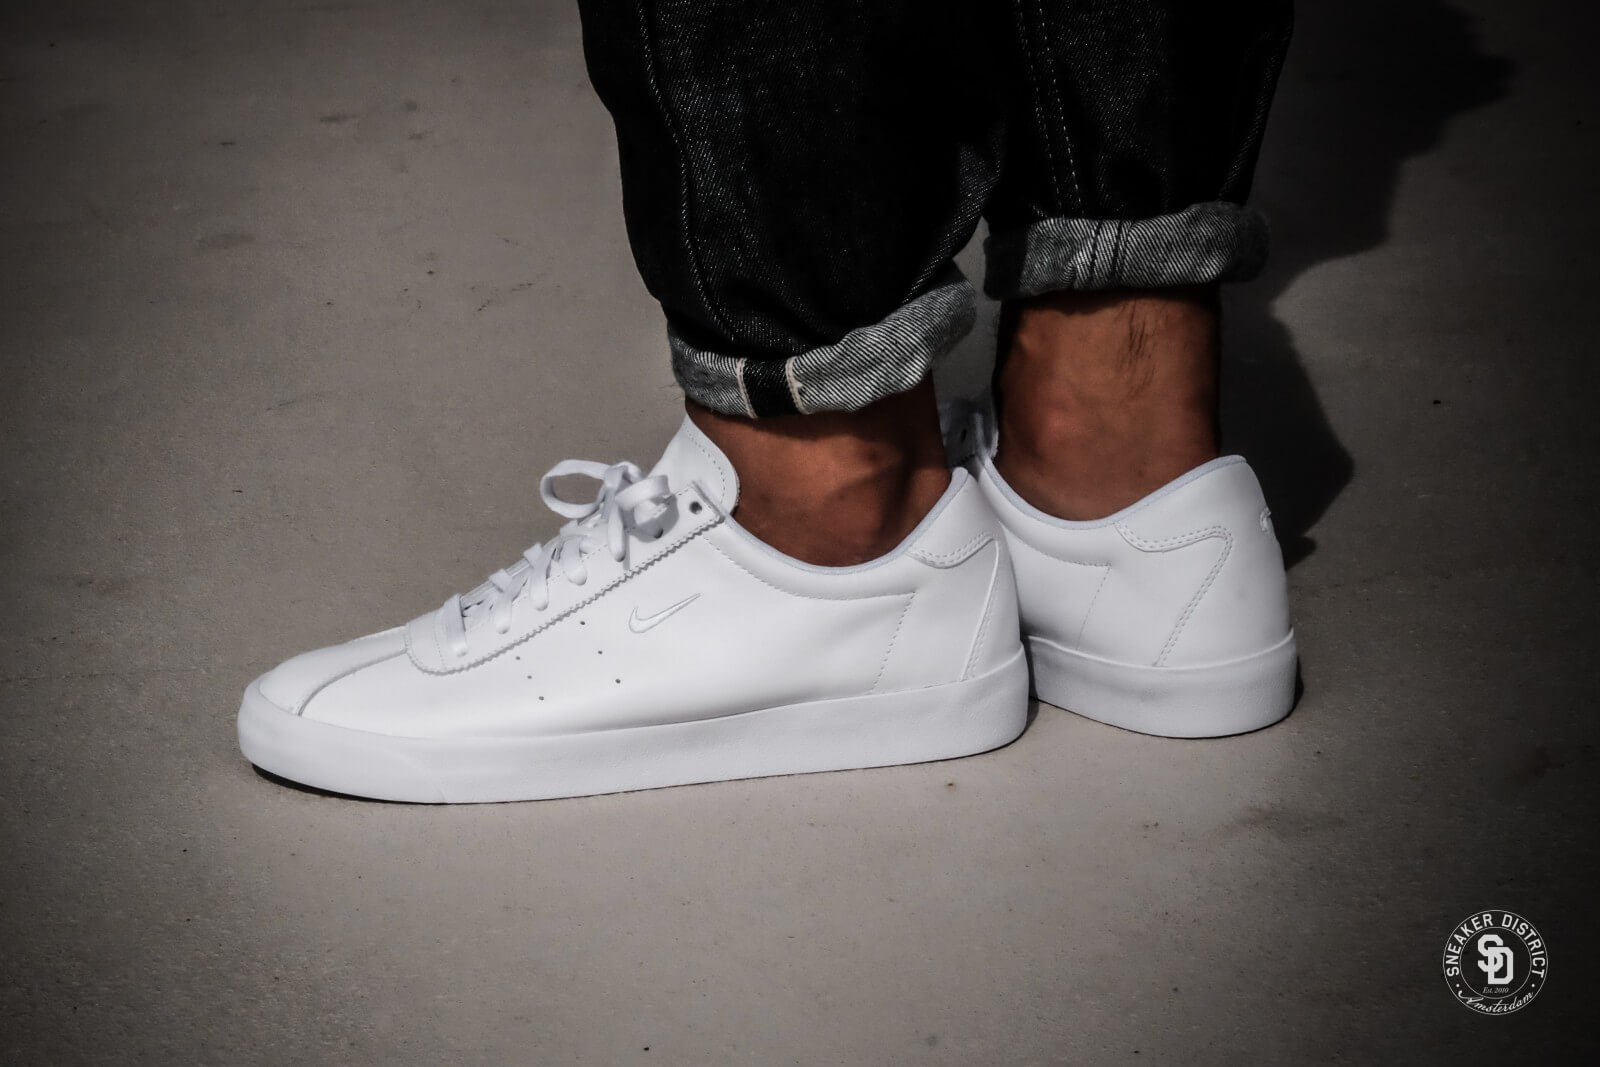 Nike Match Classic Leather WhiteWhite 917554 100